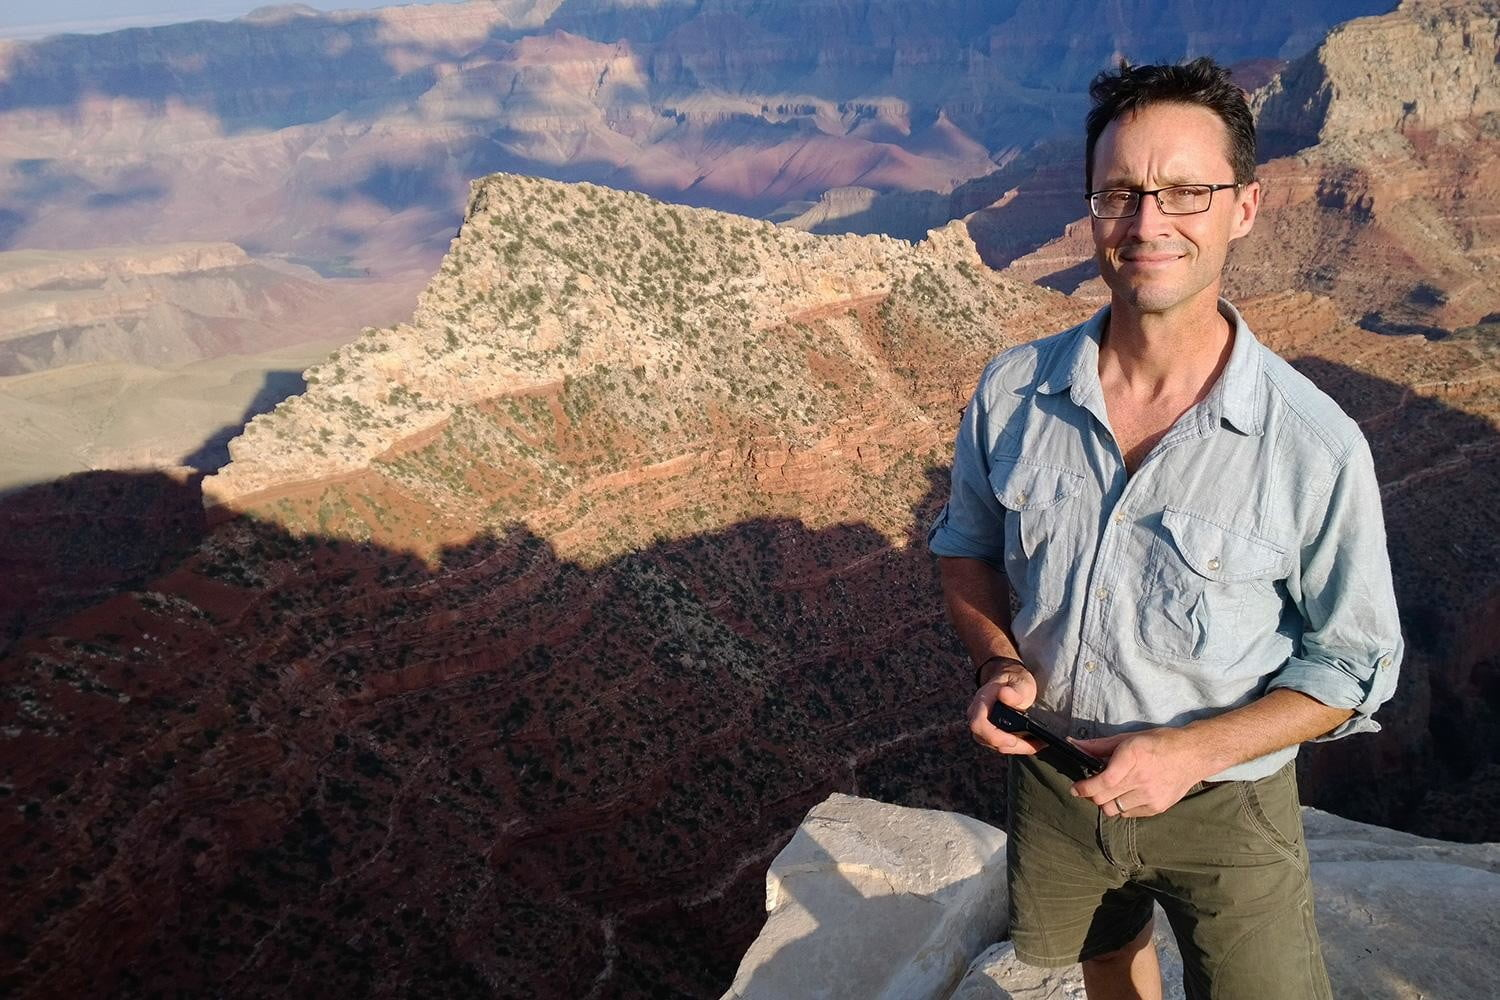 National Geographic photographer Stephen Alvarez, on assignment and standing on top of the world (of sorts).